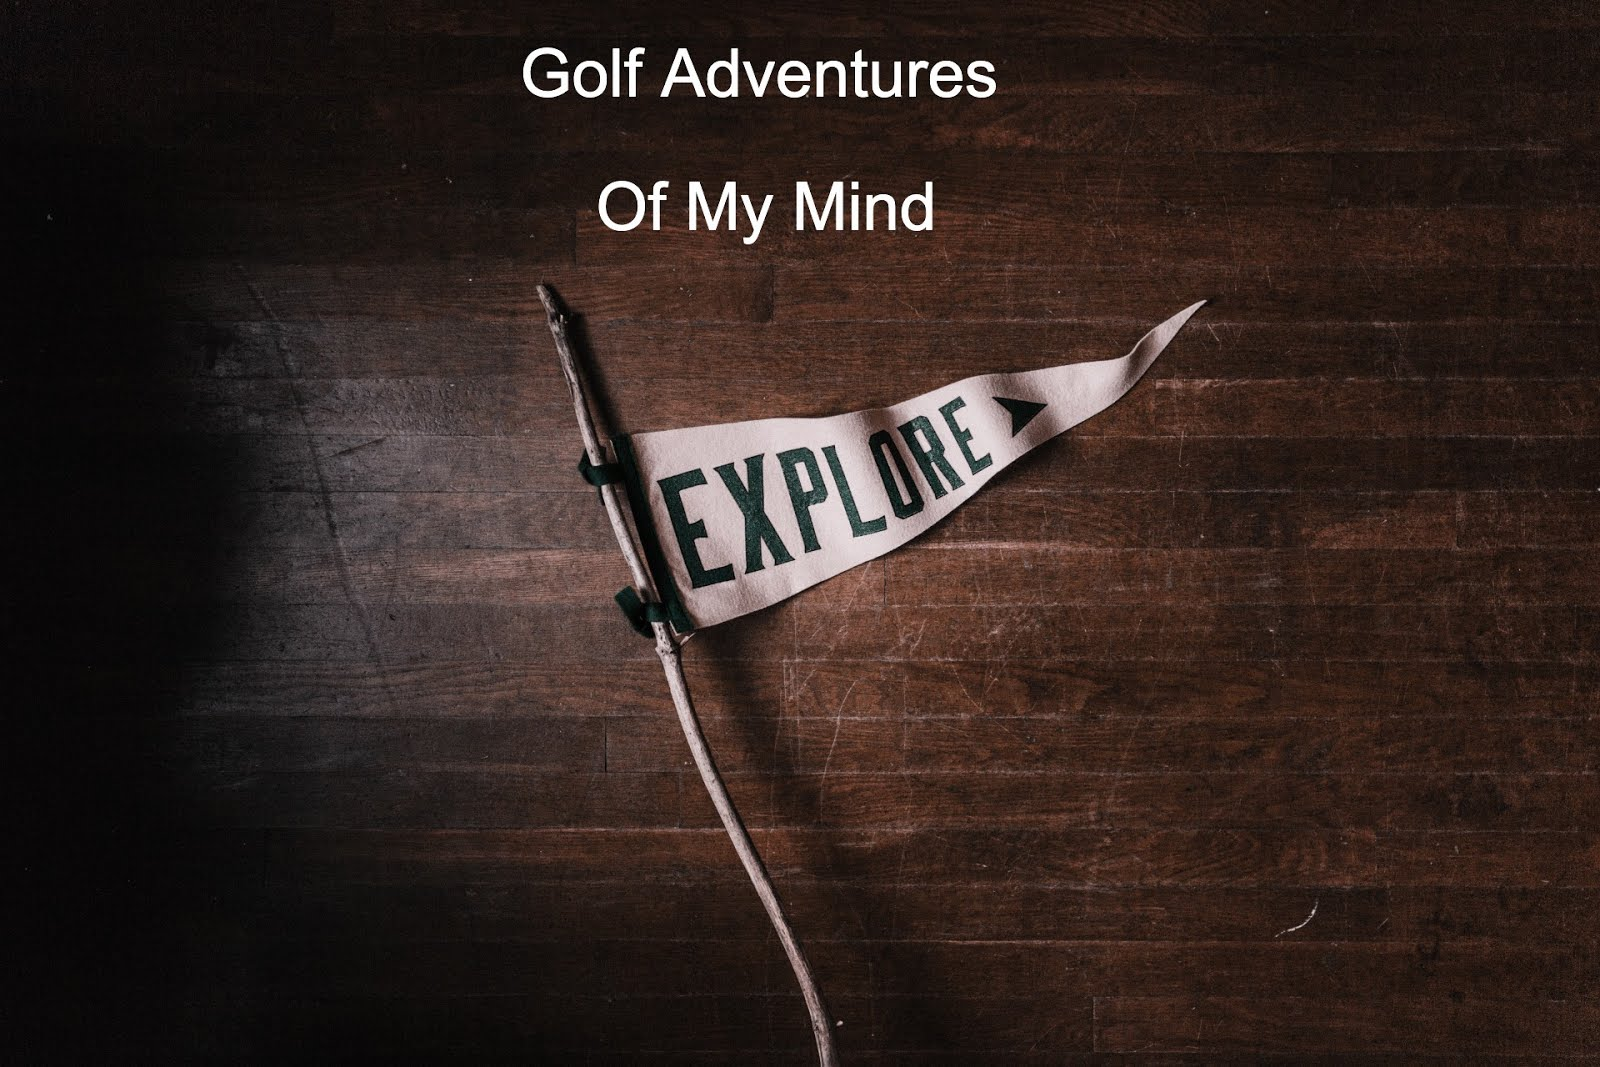 Dream Golf Adventures